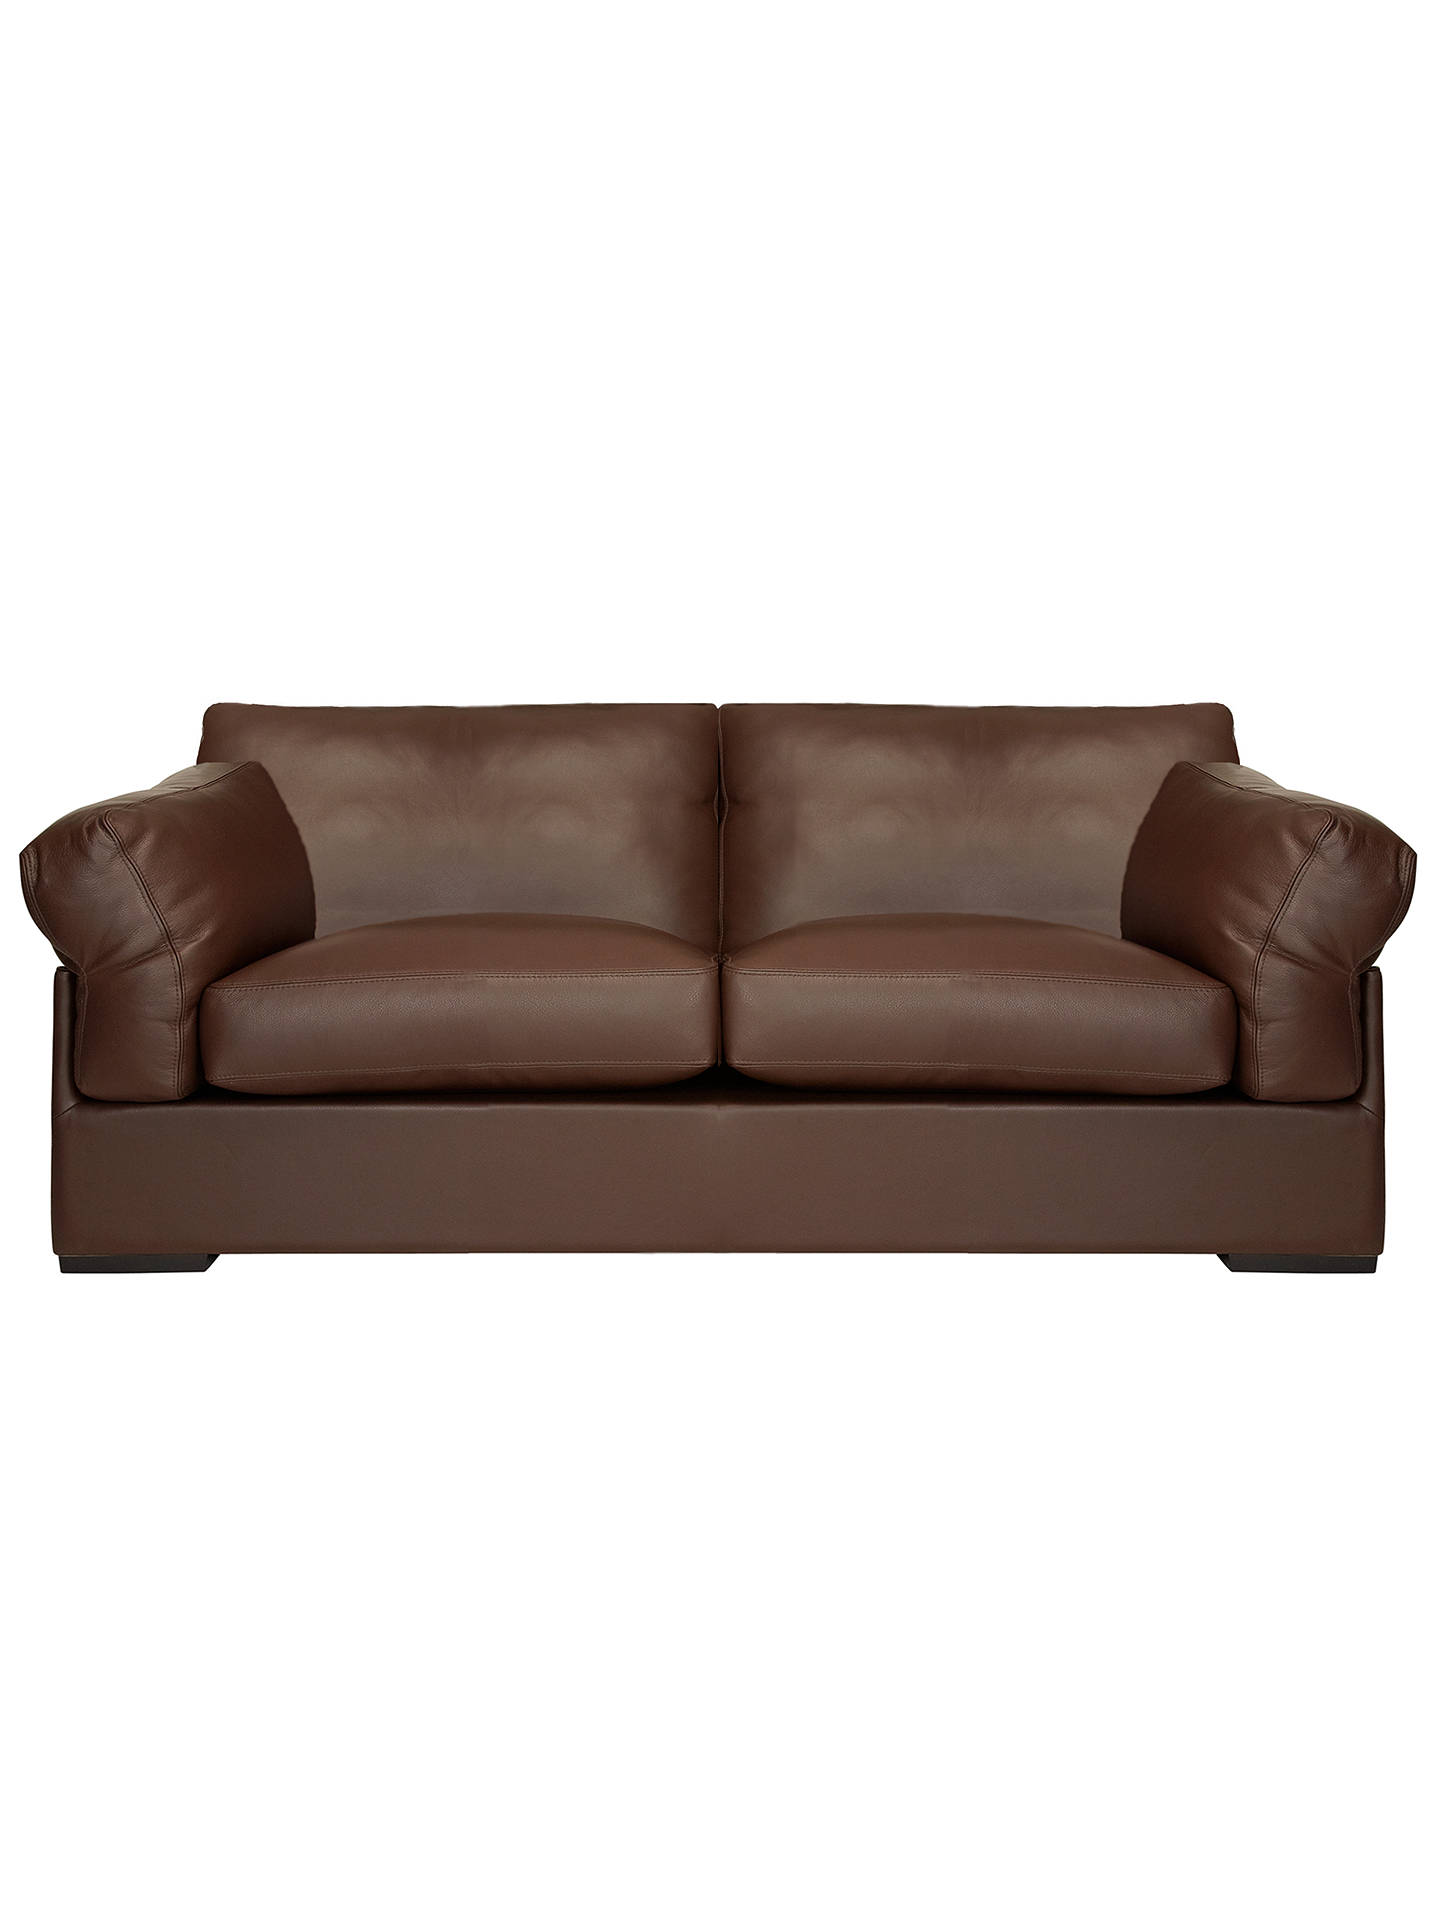 John Lewis Partners Java Large 3 Seater Leather Sofa Nature Brown Online At Johnlewis